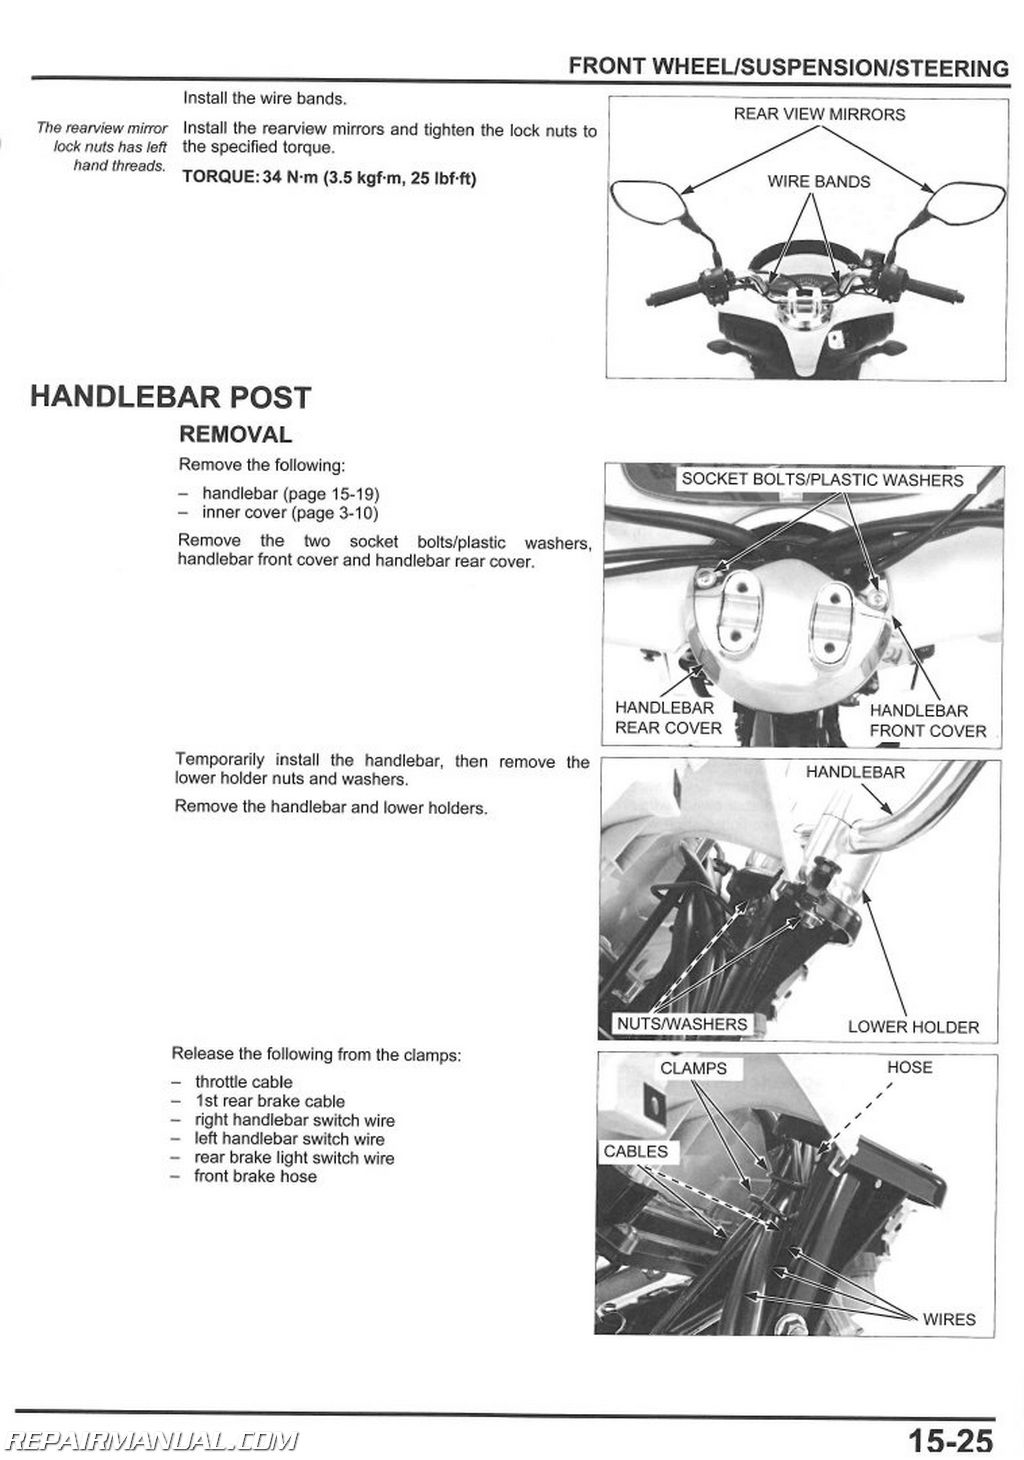 Honda Pcx125 Scooter Service Manual By Repairmanual